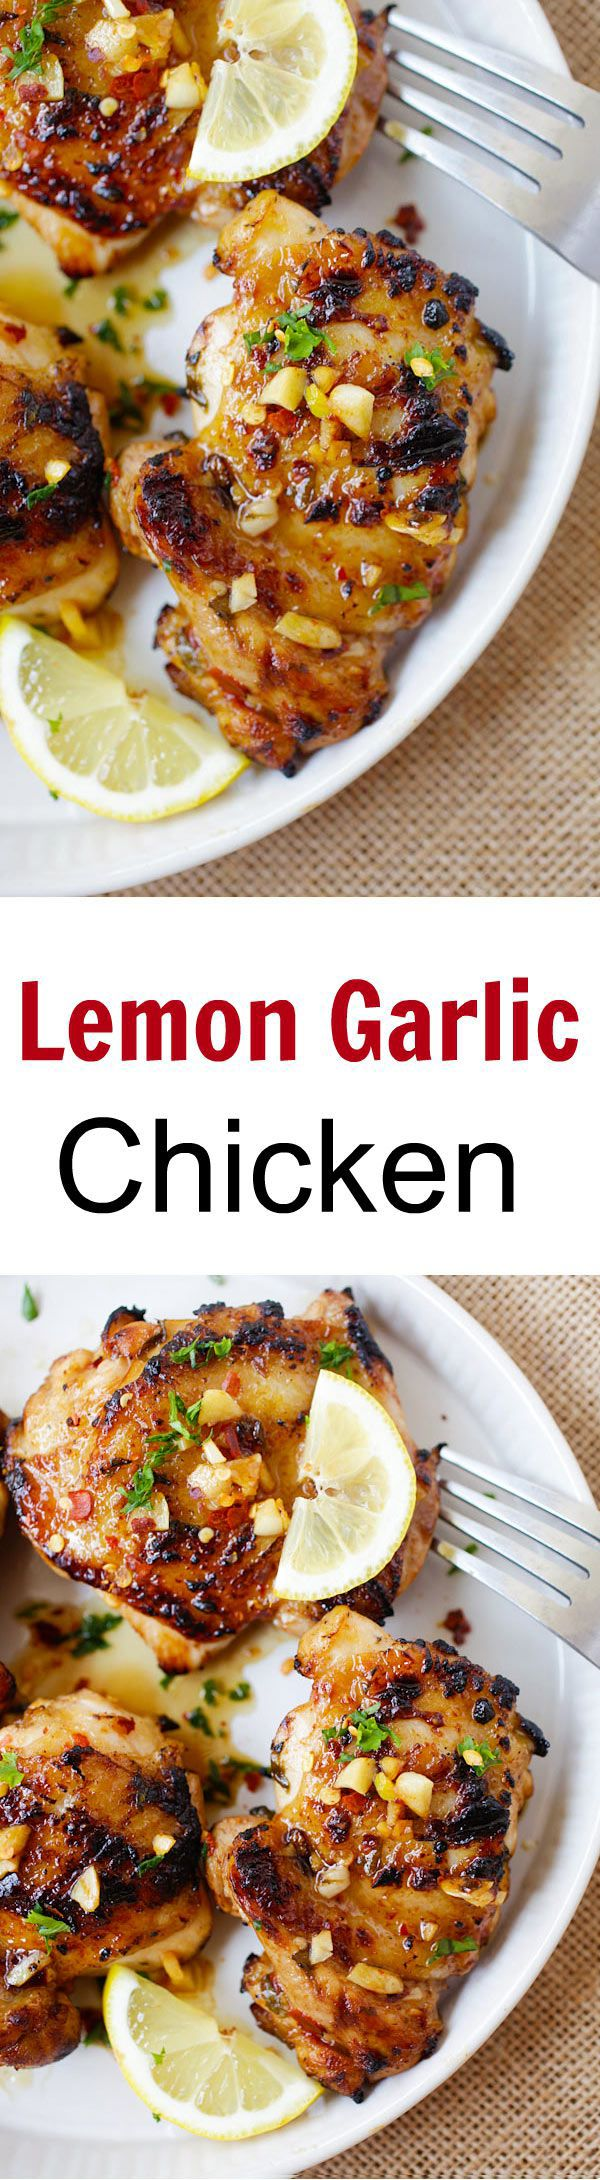 Lemon Garlic Chicken – juicy, moist and delicious chicken marinated with lemon and garlic and grilled to perfection. So easy and so good!